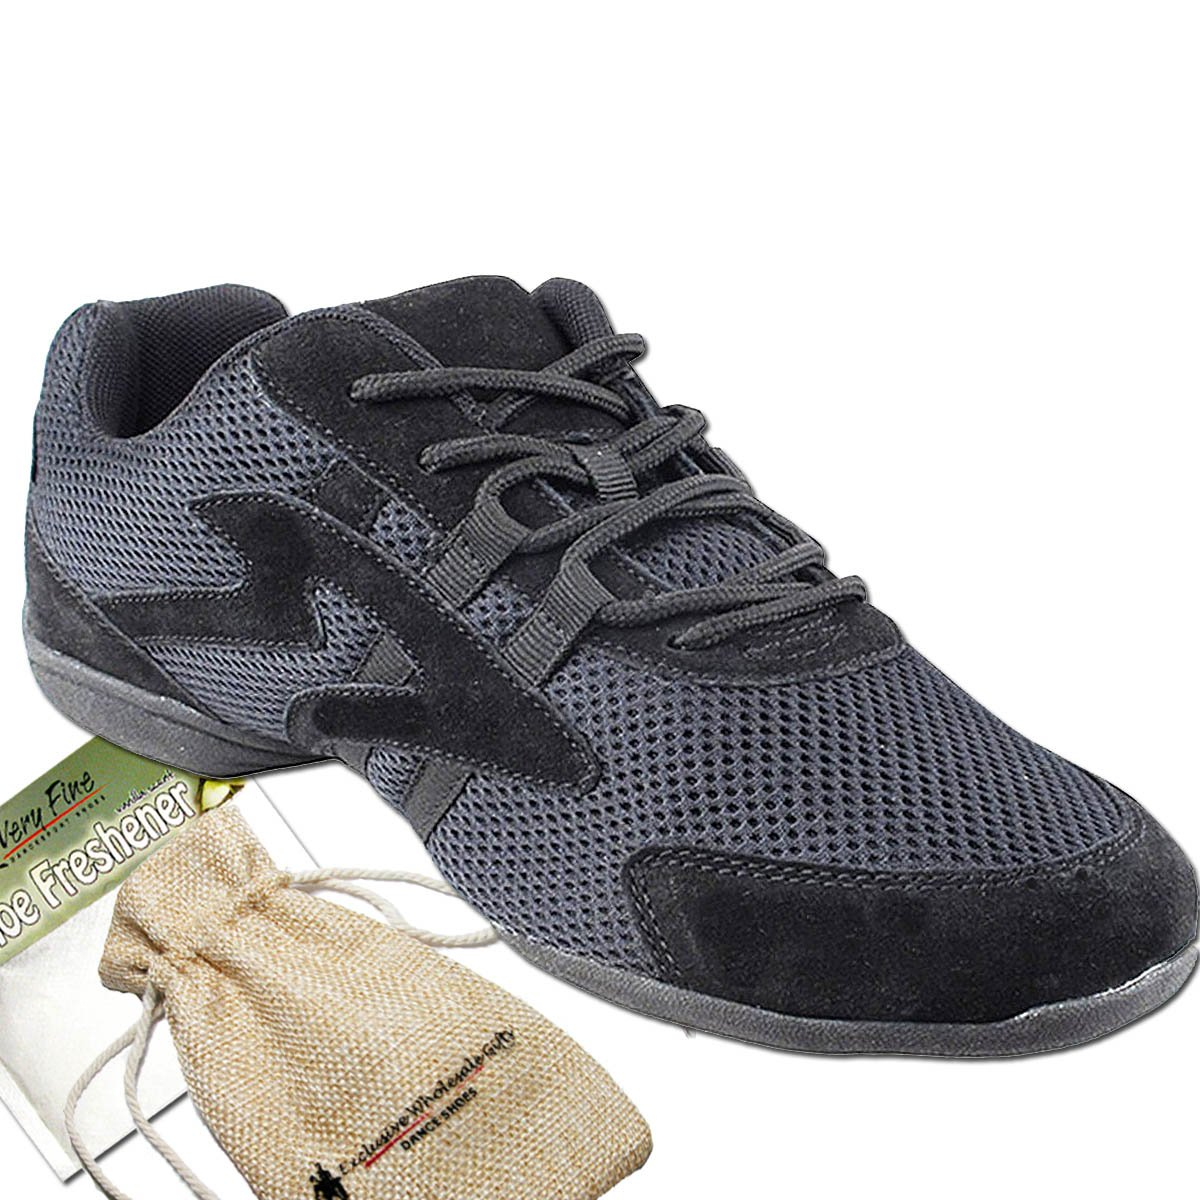 Bundle- 4 items - Very Fine Mens Womens Unisex Practice Dance Sneaker Split Sole VFSN012 Pouch Bag Sachet, Low Profile:Black 11 M US